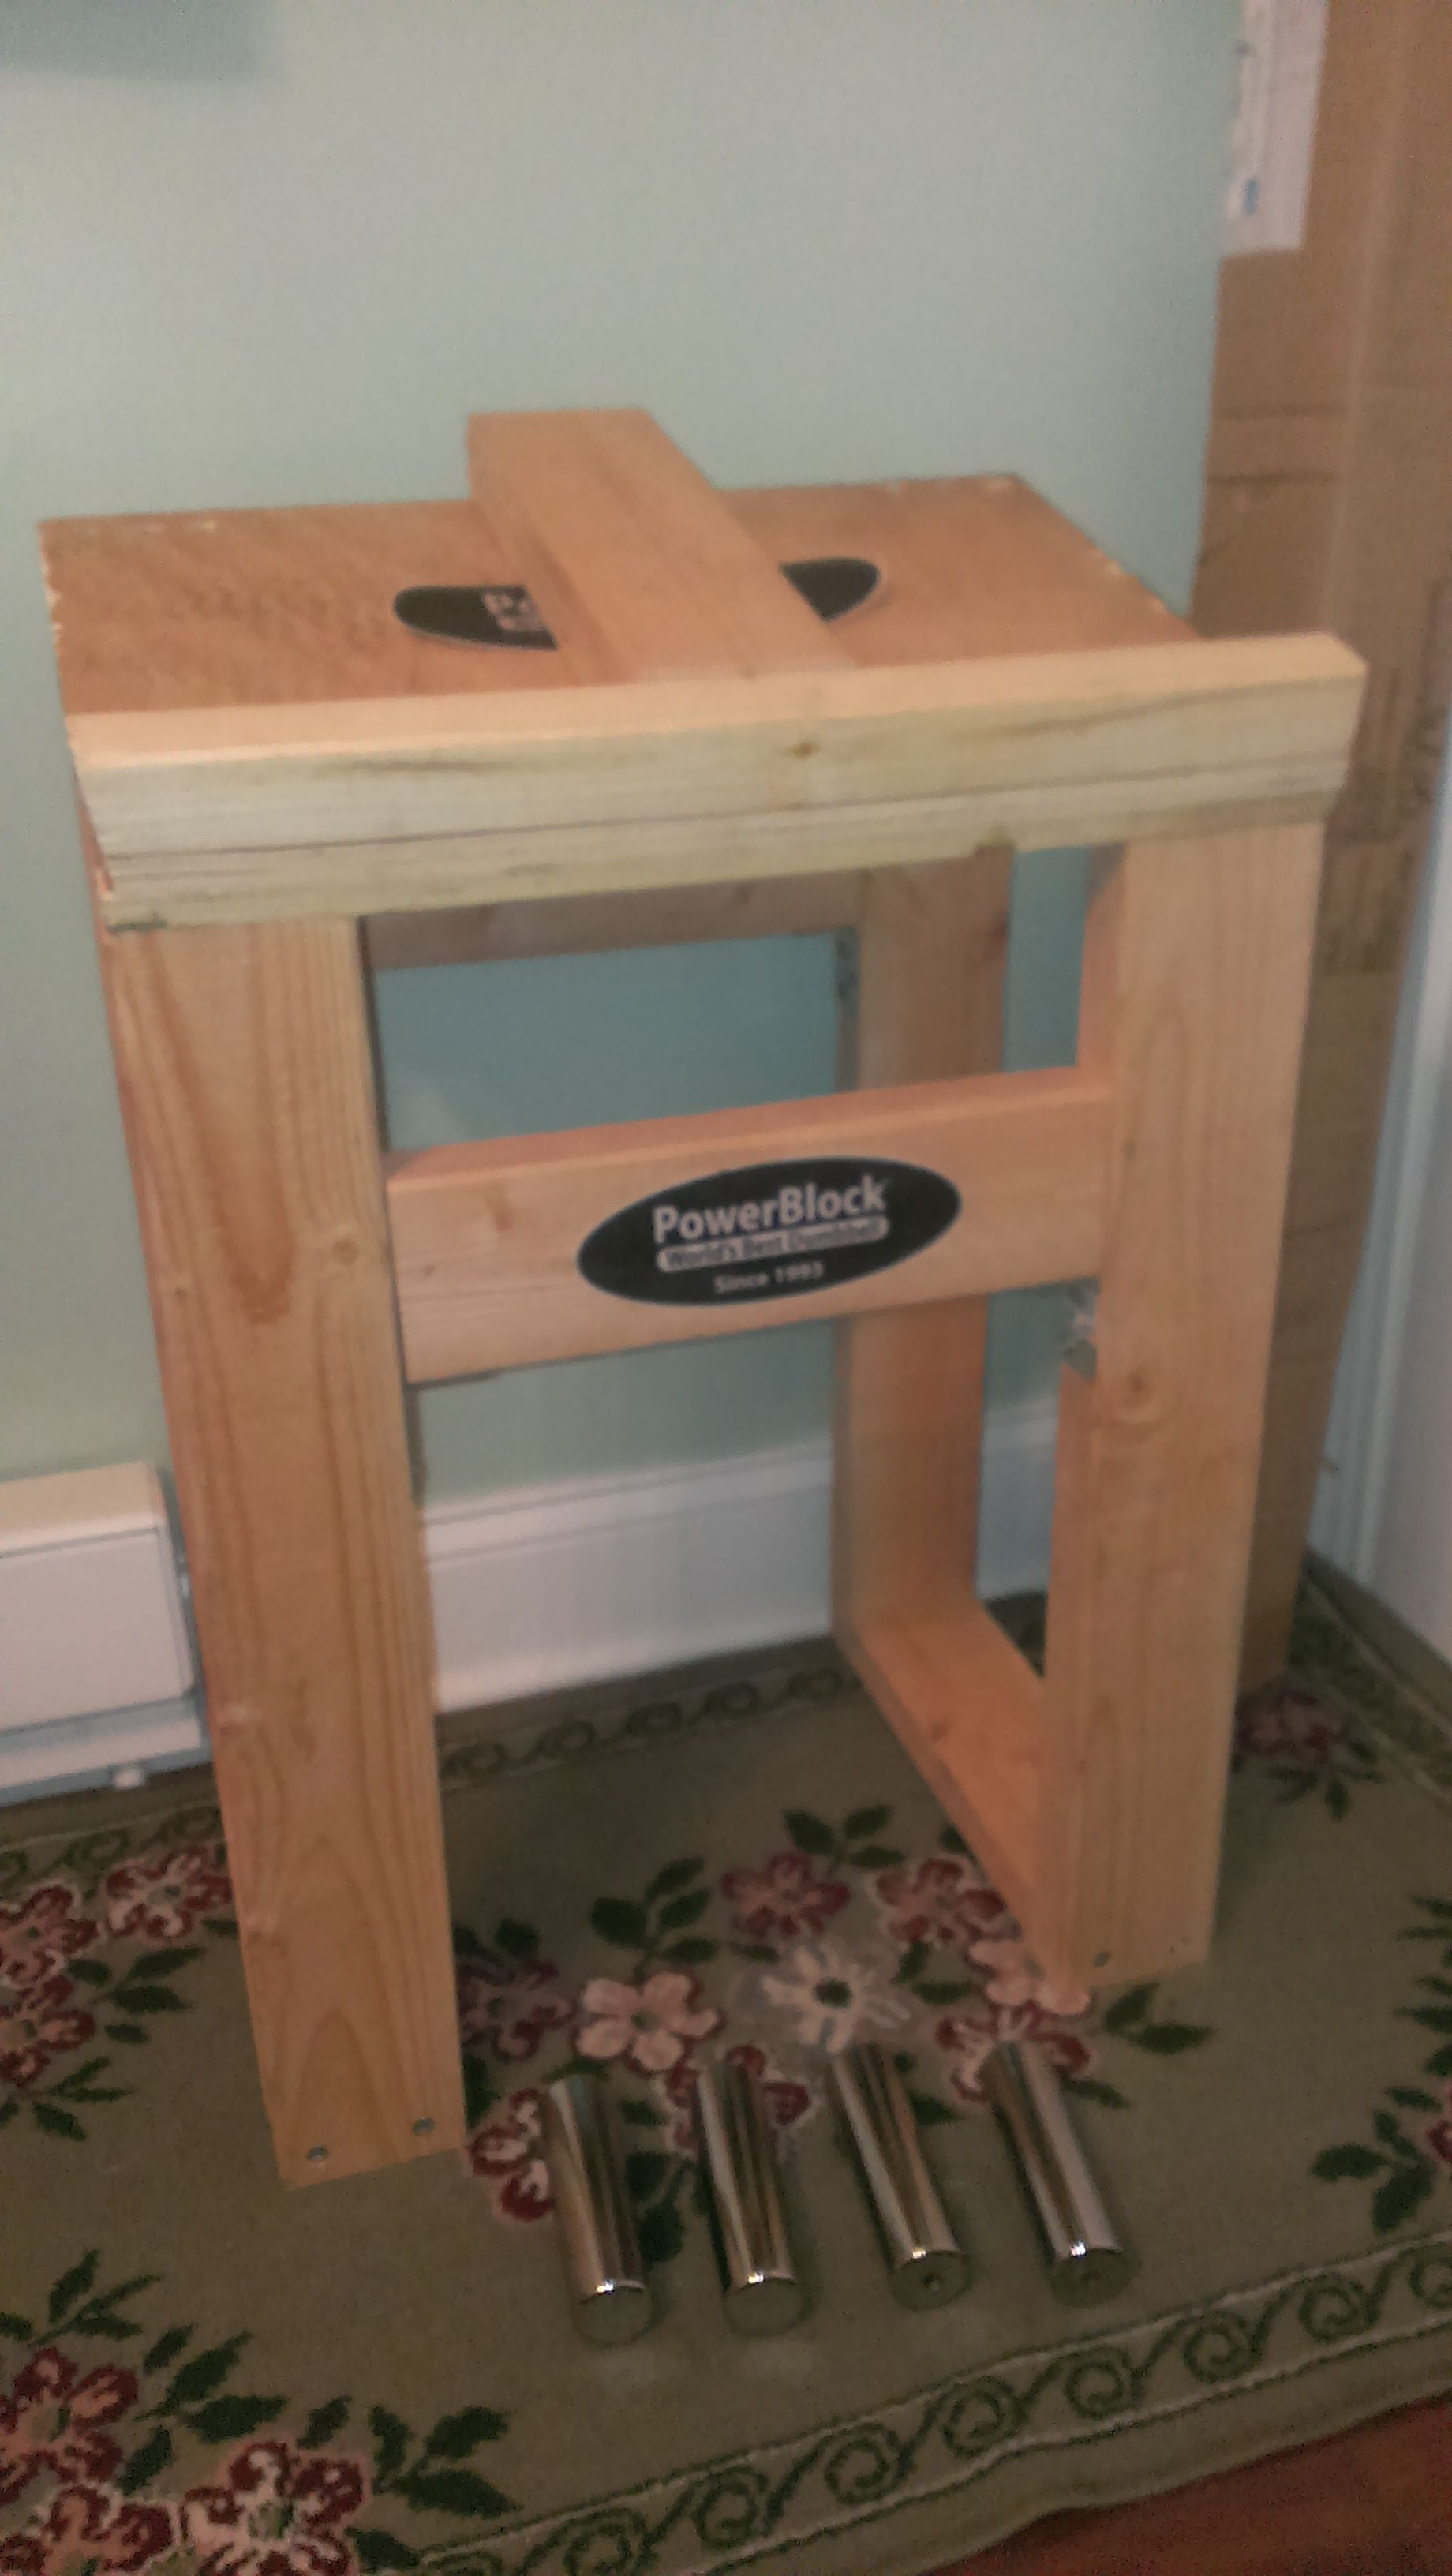 Diy Powerblock Dumbbell Stand Woodworking Diy Home Gym Woodworking Projects Diy Small Woodworking Projects